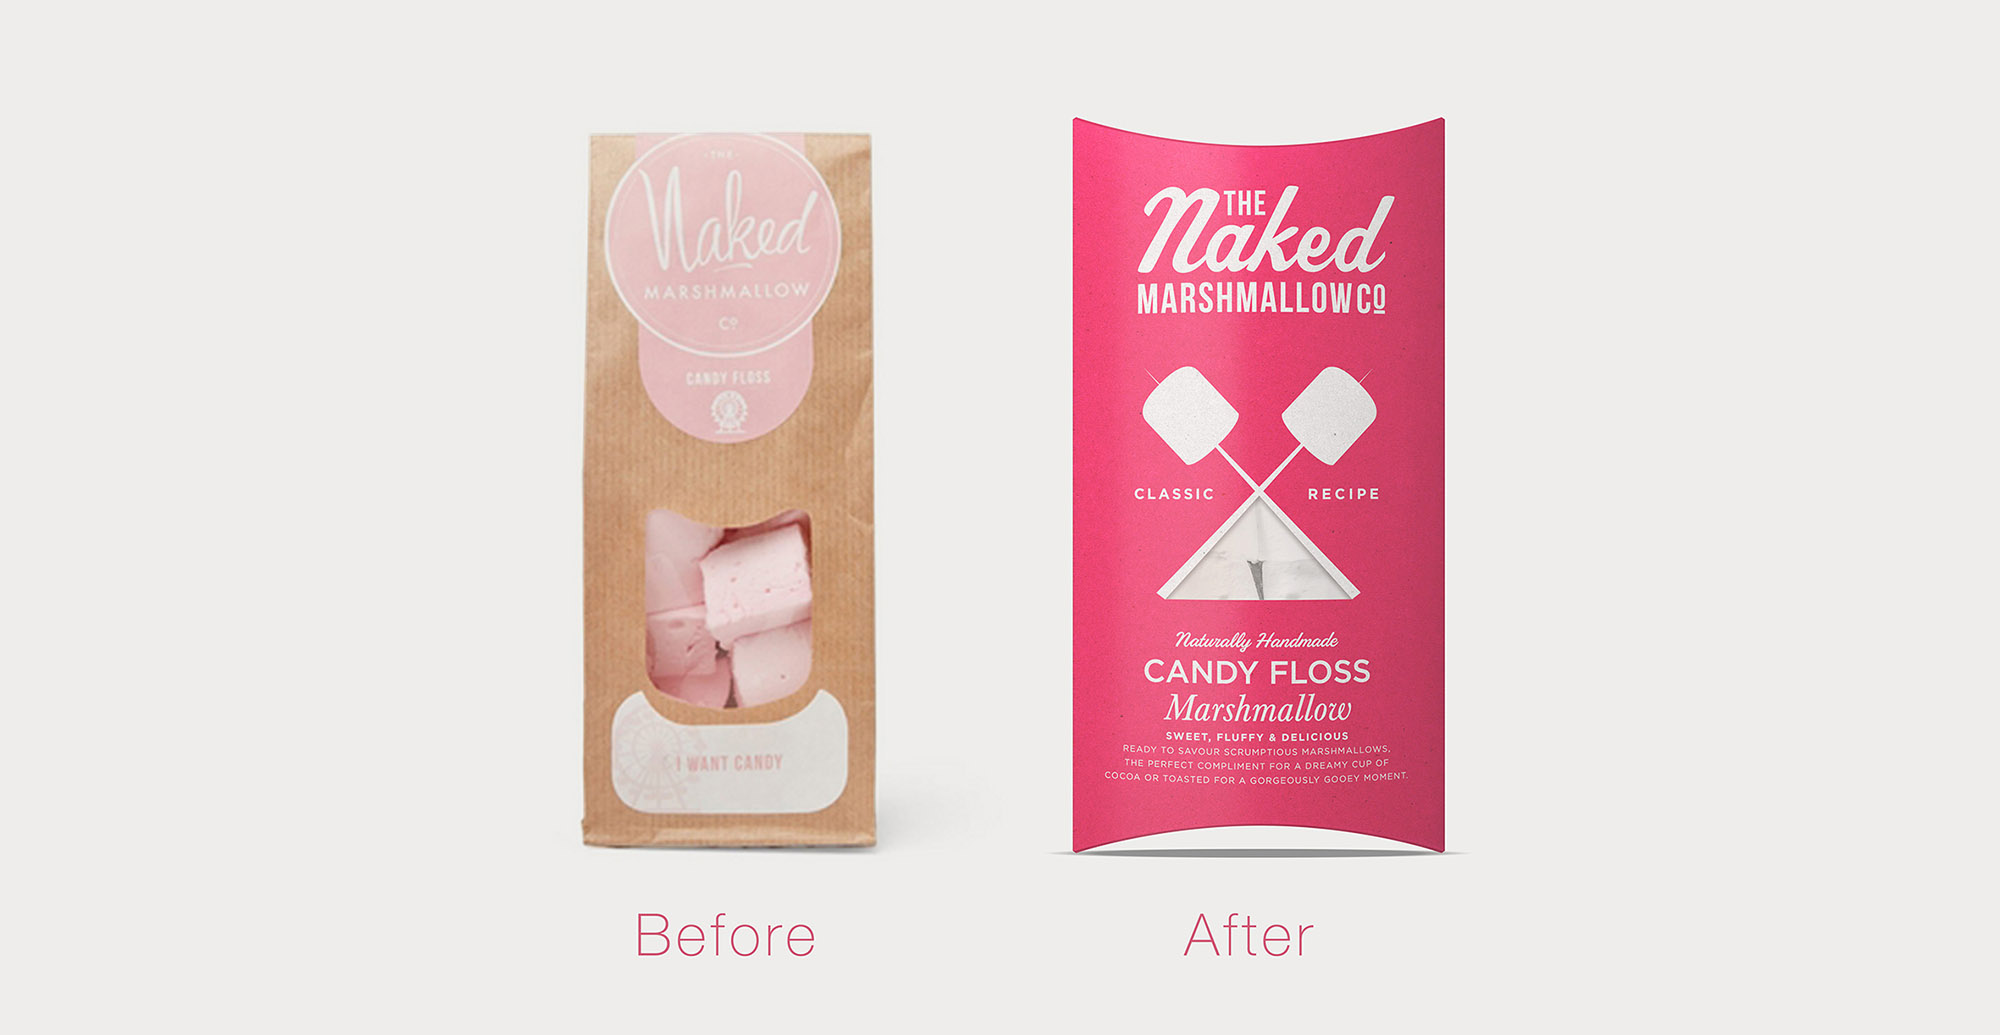 Naked Marshmallow confectionery branding and packaging design before and after